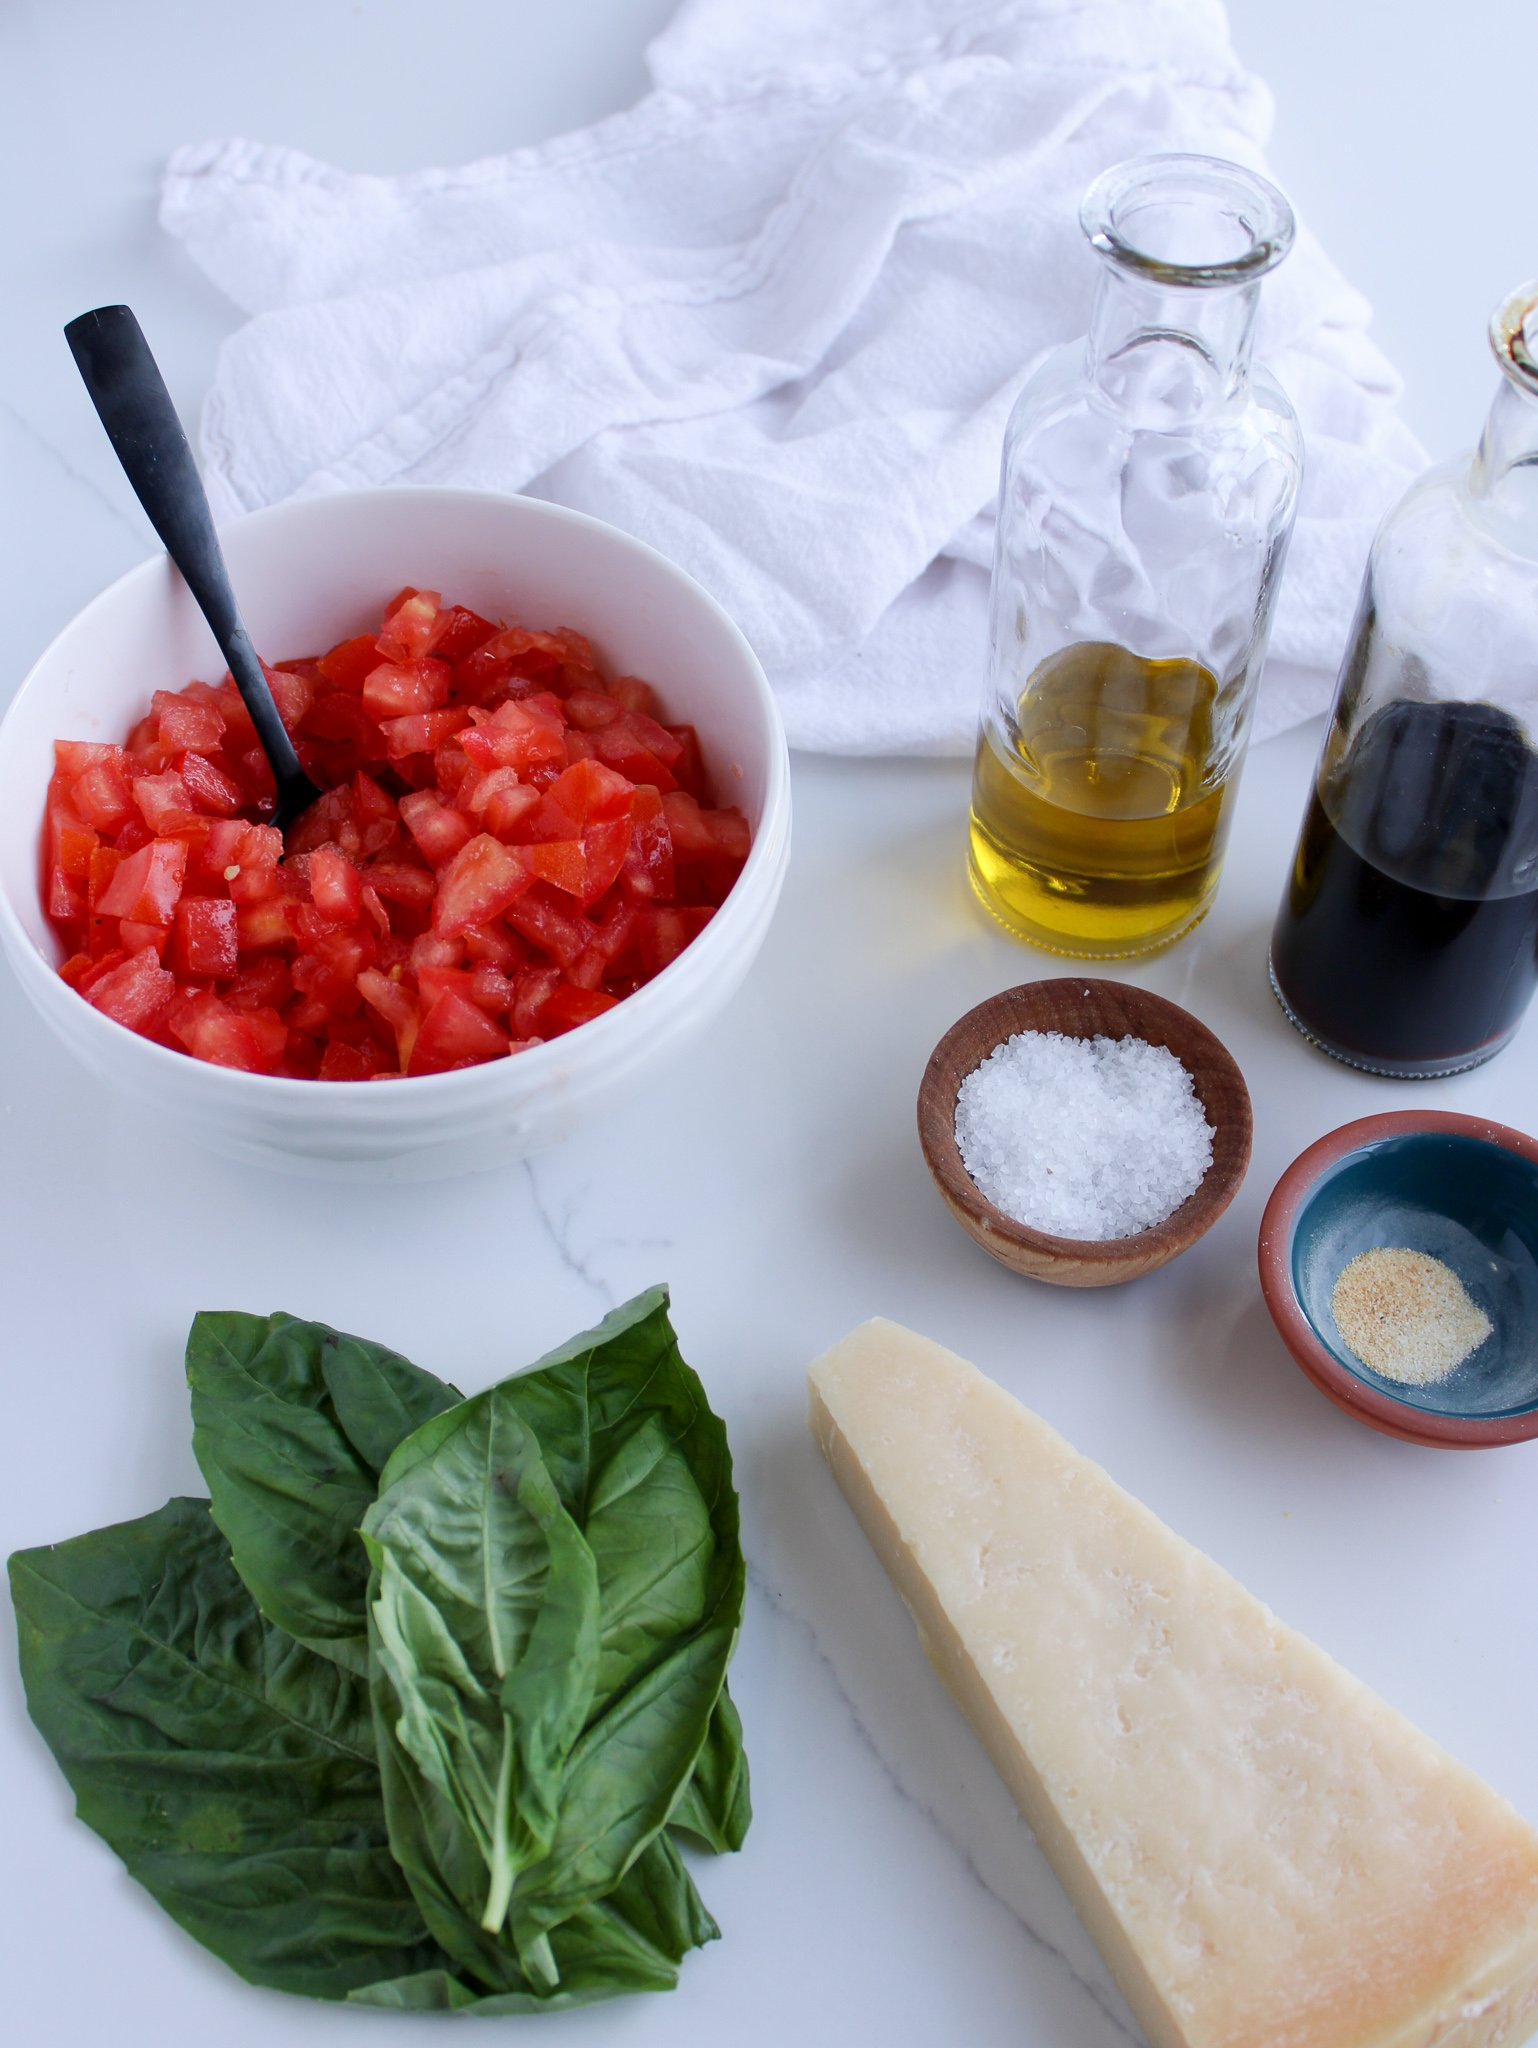 Ingredients for a classic bruschetta dip laid out including tomatoes, olive oil, balsamic vinegar, salt, garlic, fresh basil and optional parmesan cheese.